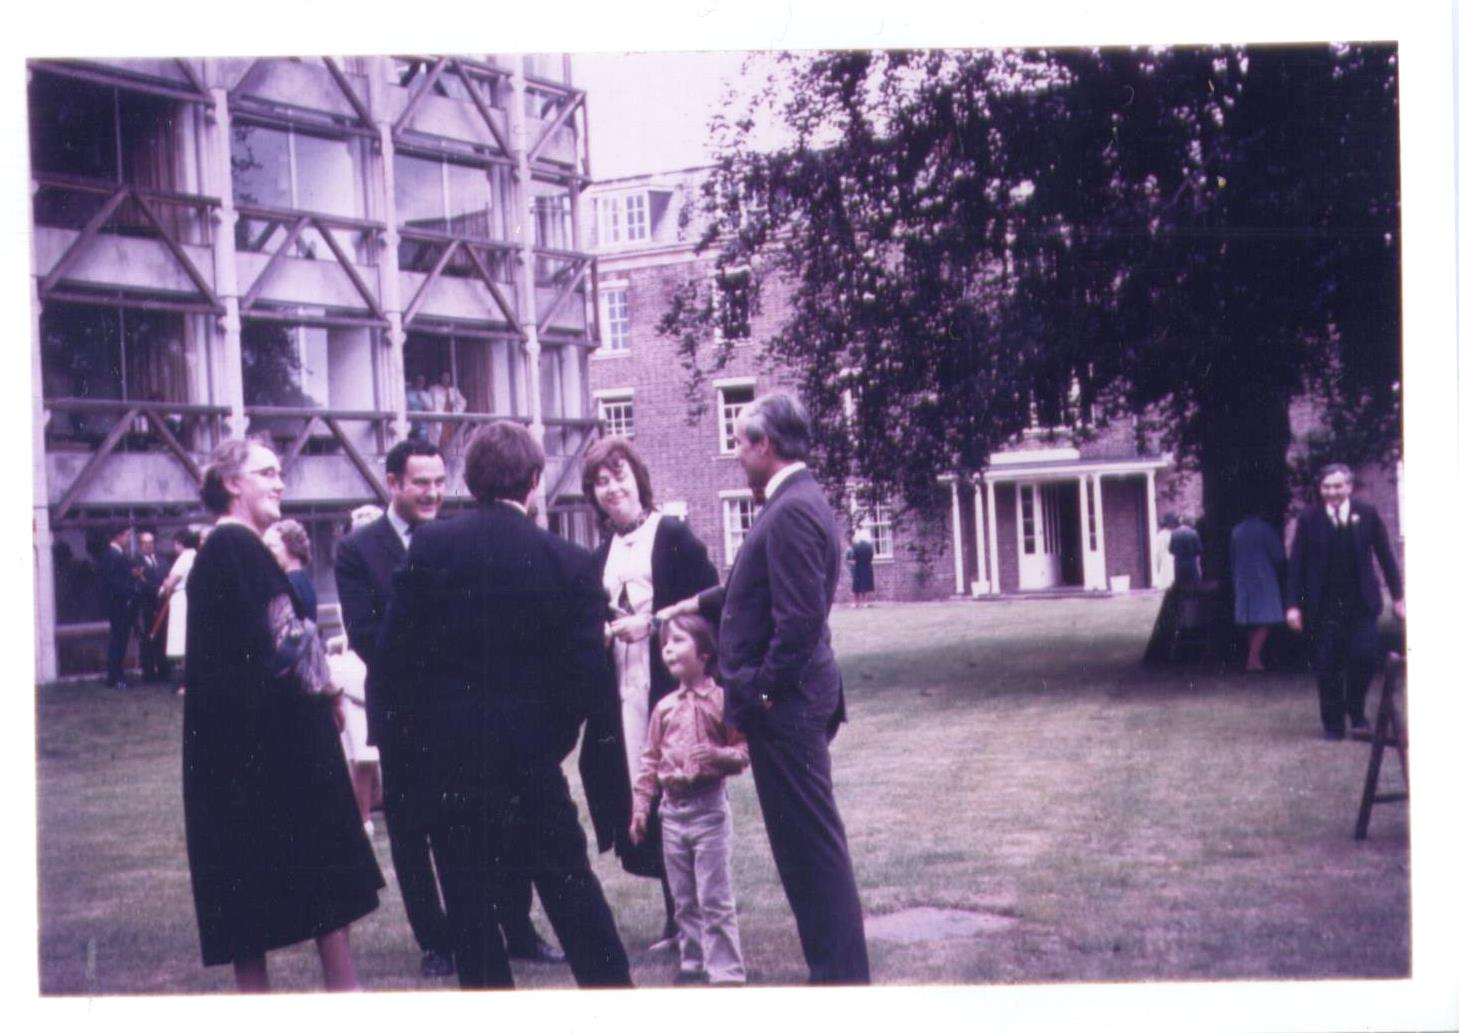 Opening of Garden Building at St Hilda's College in 1971